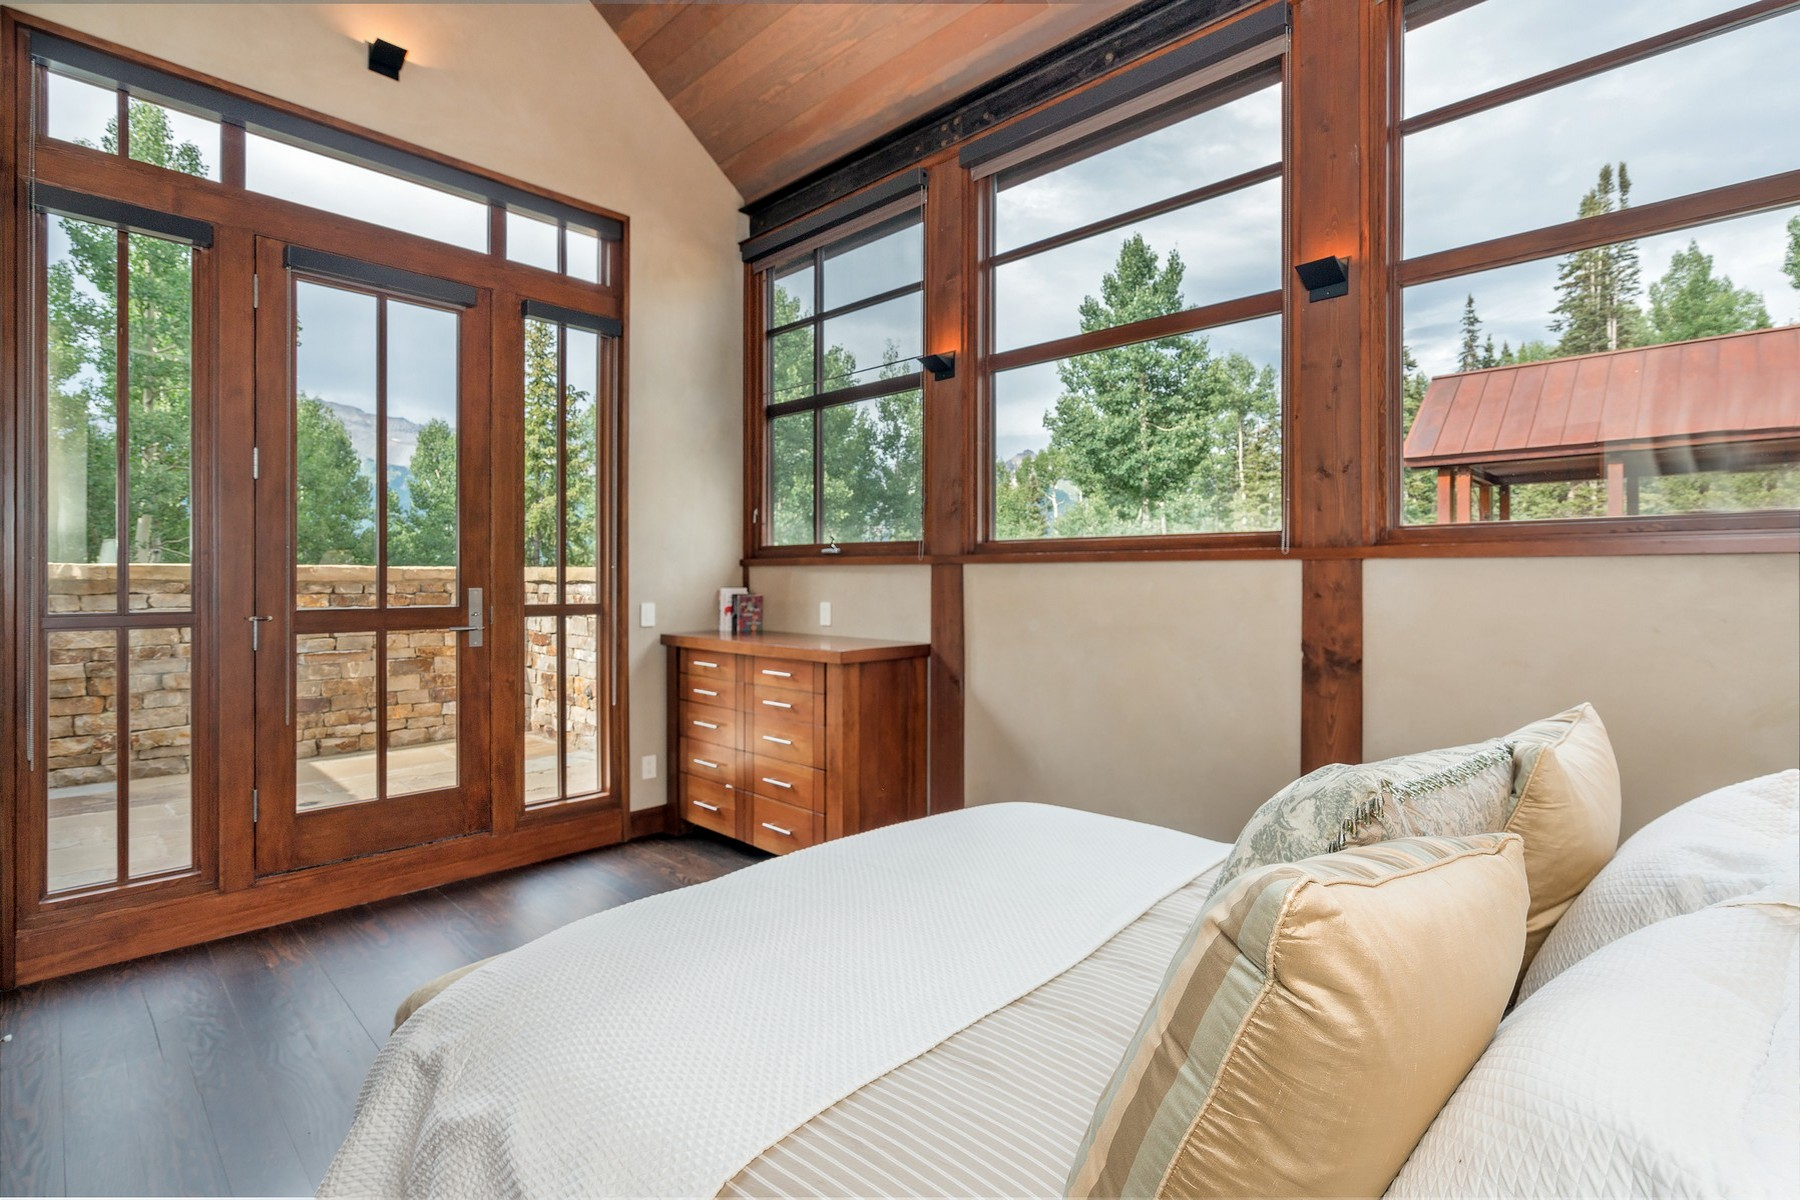 Additional photo for property listing at The Bridge House 135 Palmyra Drive Mountain Village, Colorado 81435 United States